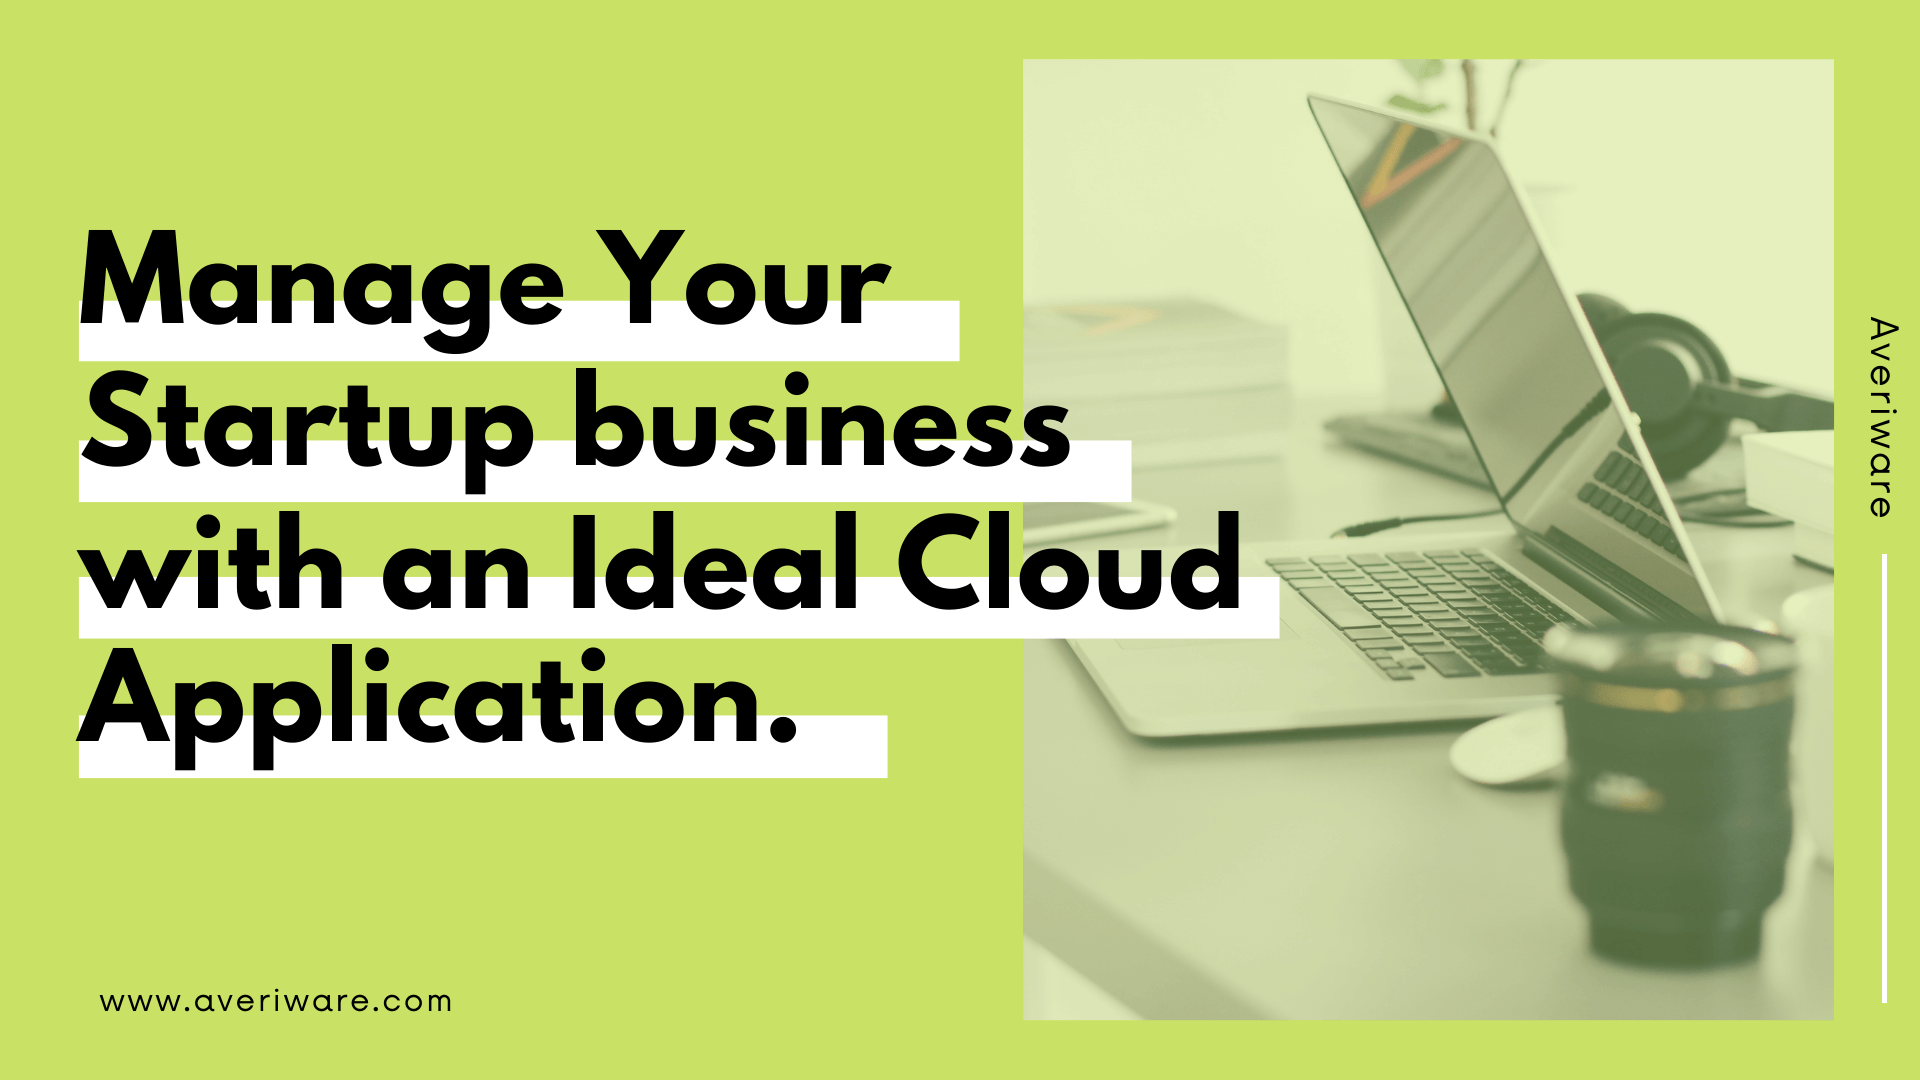 Manage Your Startup business with an Ideal Cloud Application. (1)